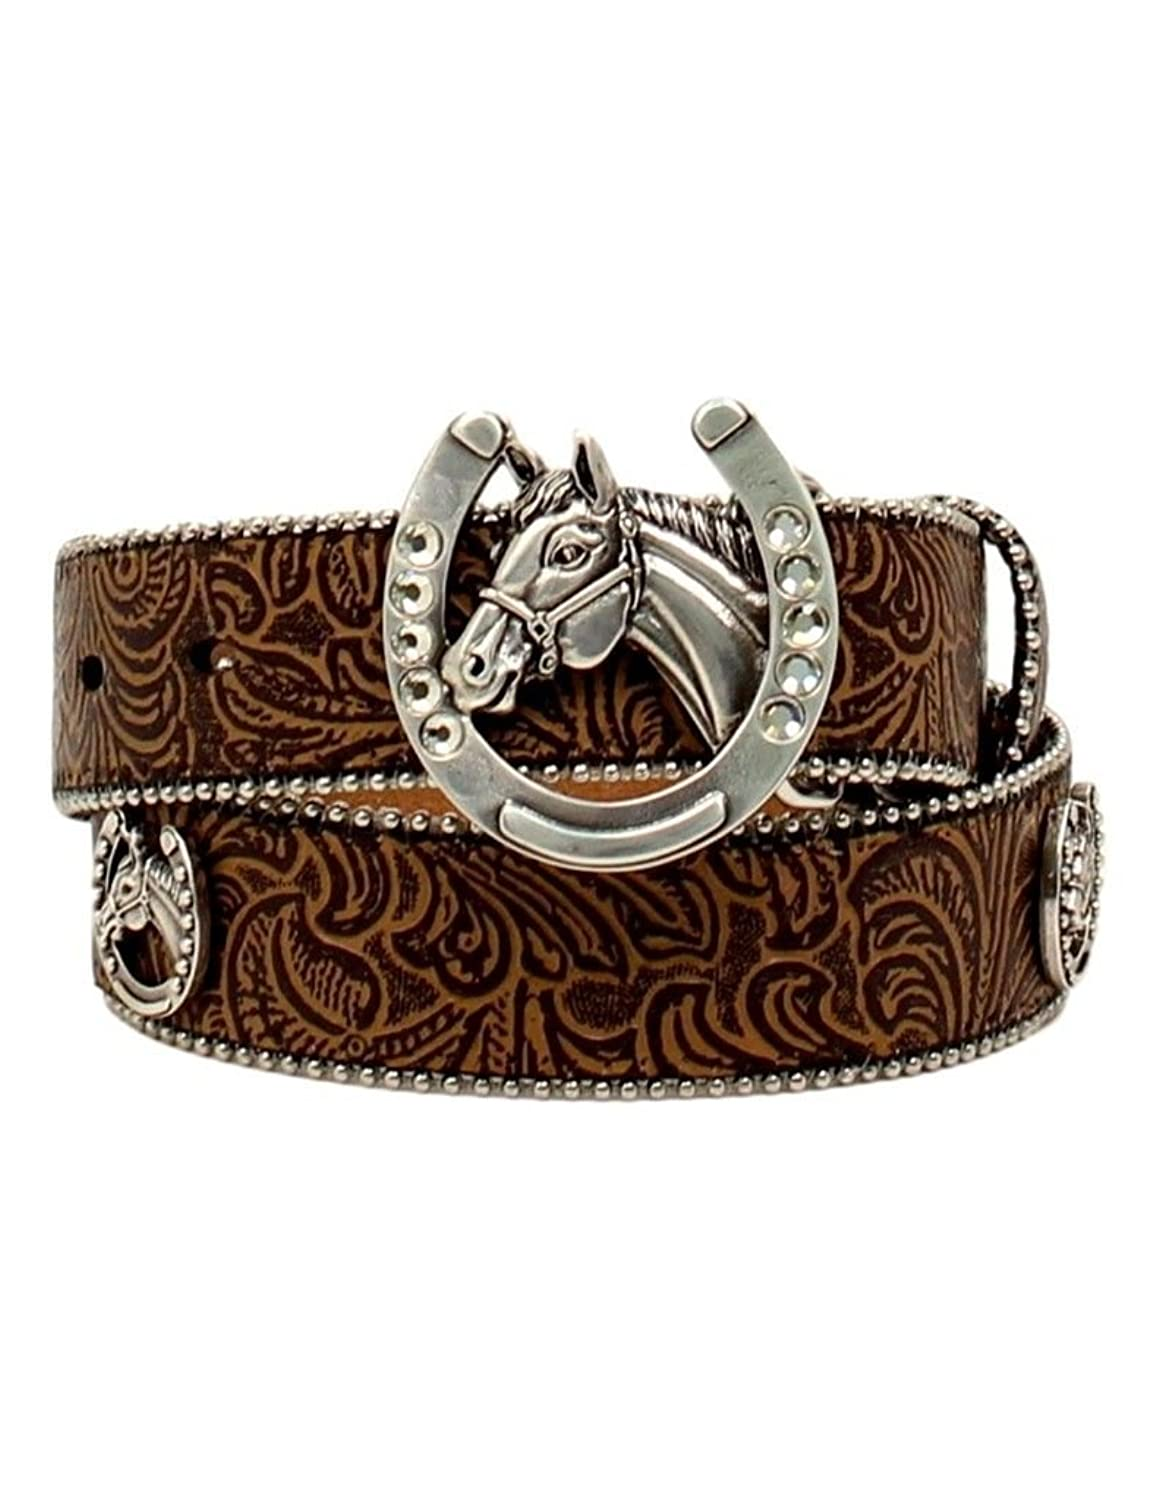 Ariat Girl's Rhinestones Horsehead Buckle Belt